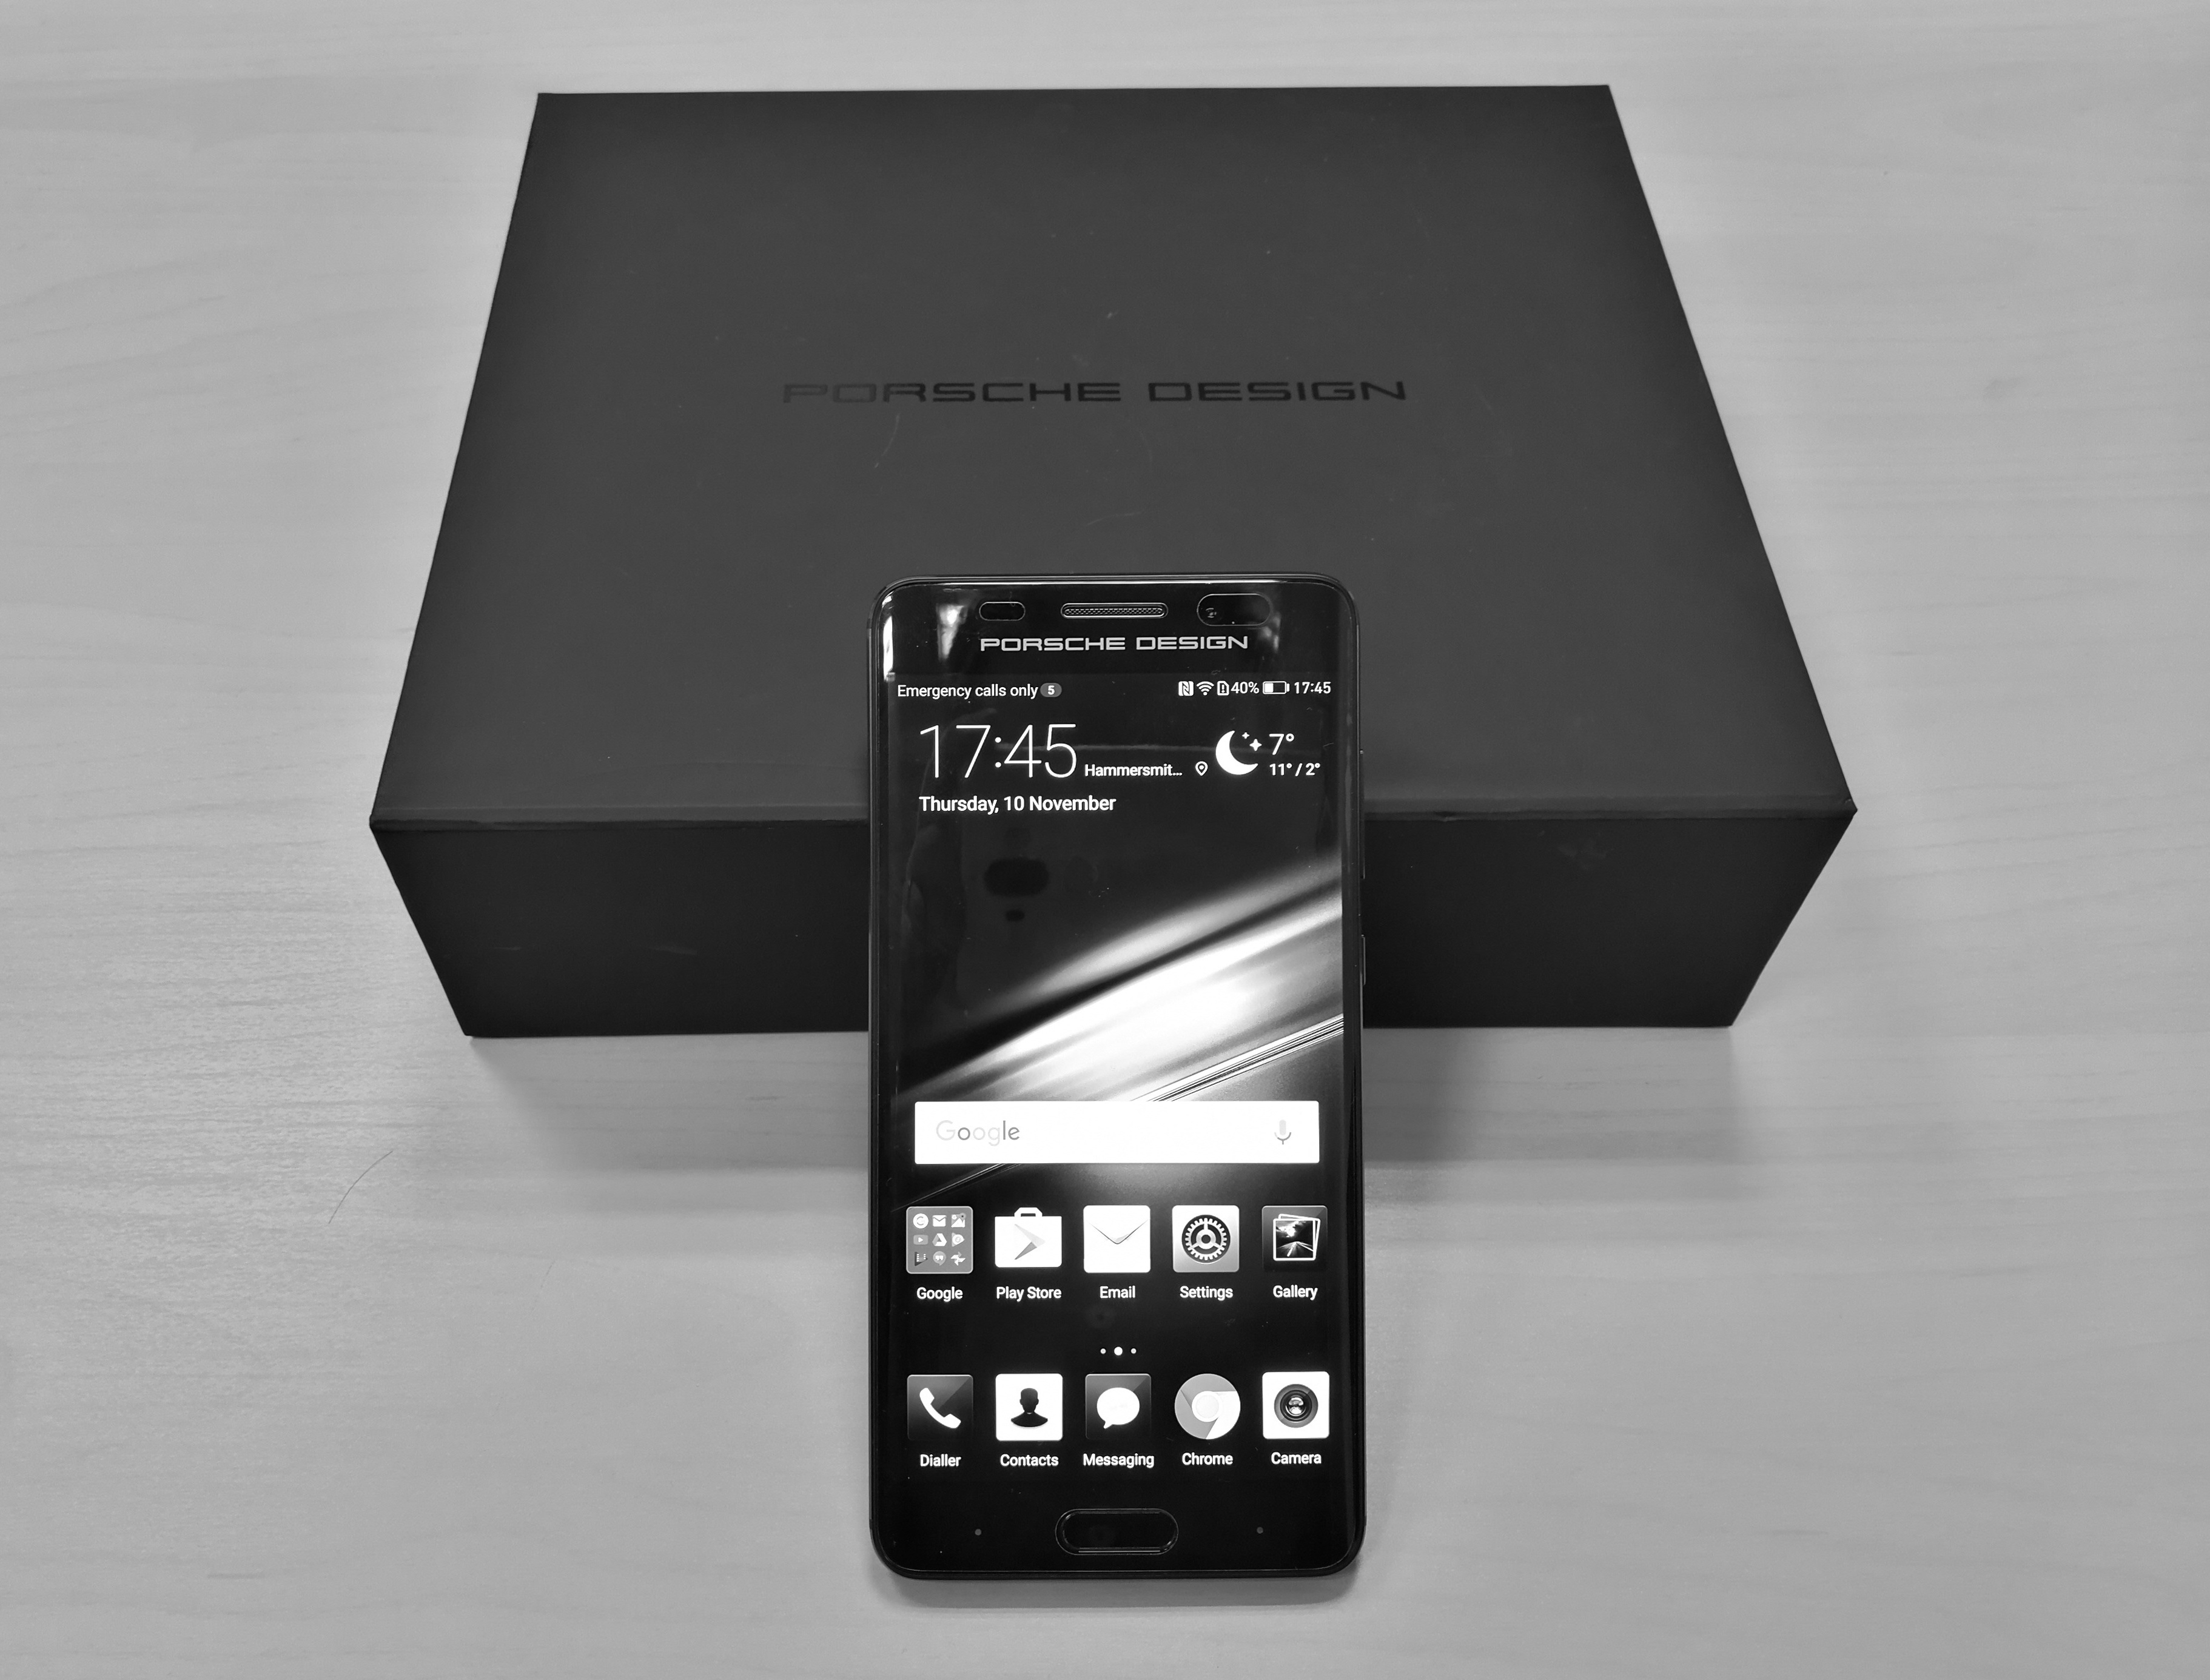 646a89f2f170 Huawei Mate 9 Porsche Design Unboxing and Hands On Benchmarks